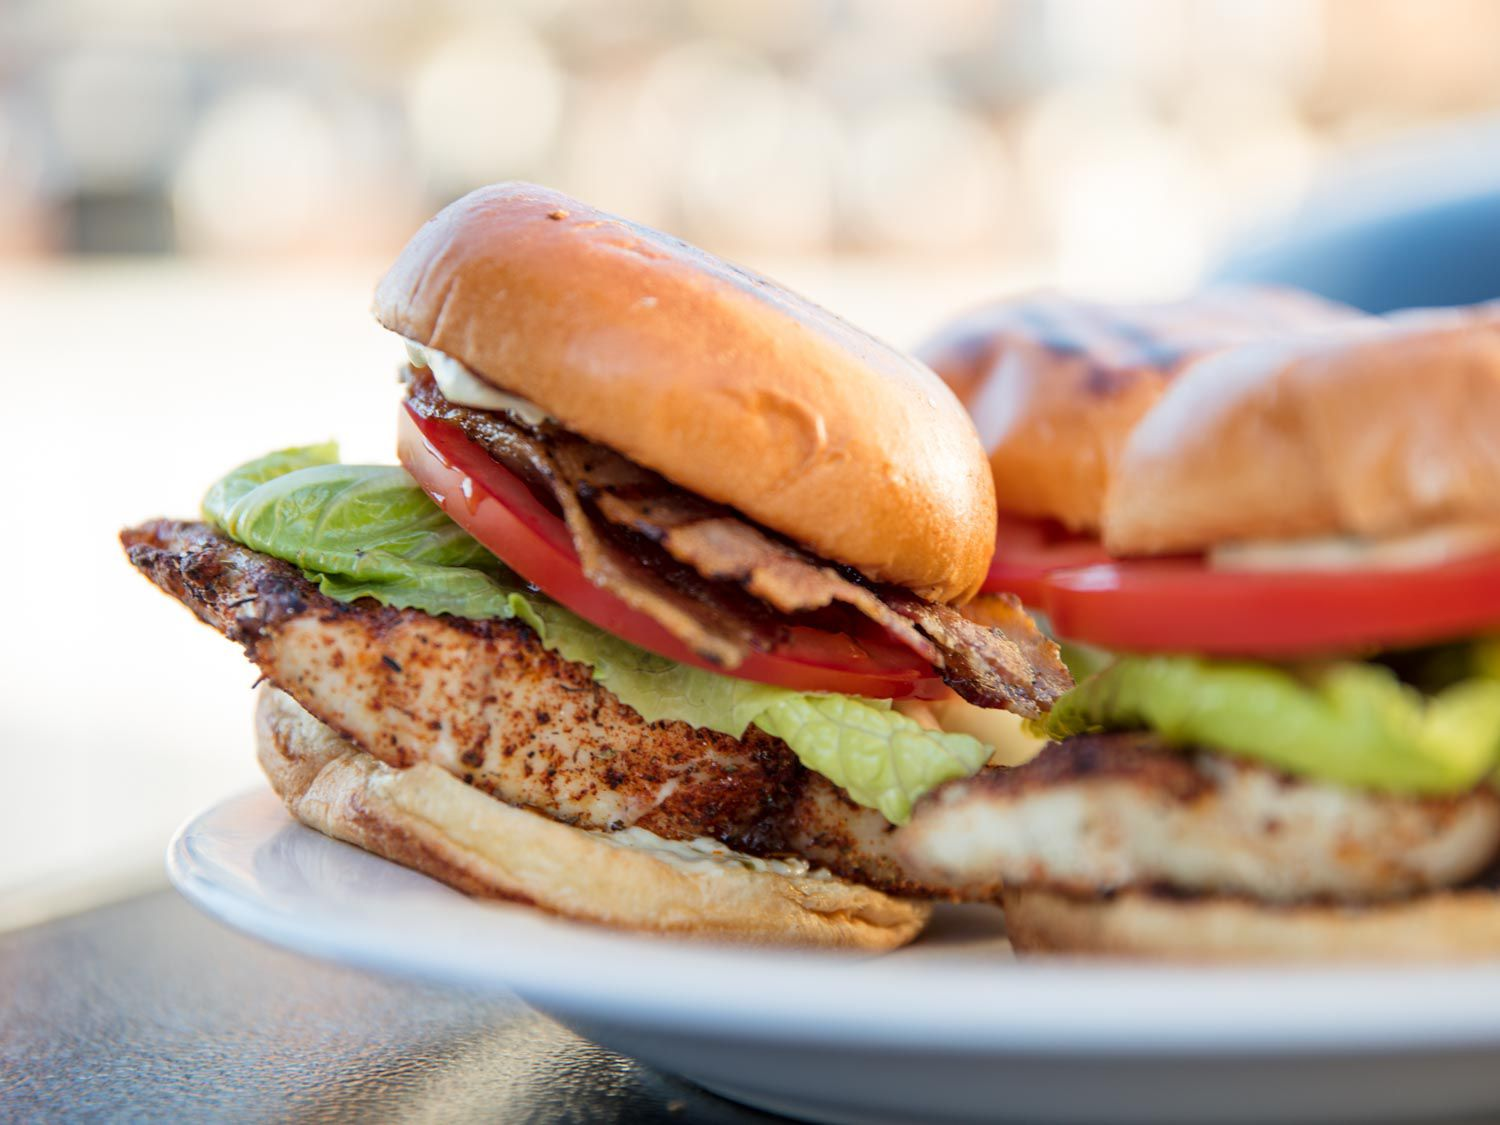 Grilled blackened fish sandwiches with lettuce and tomato